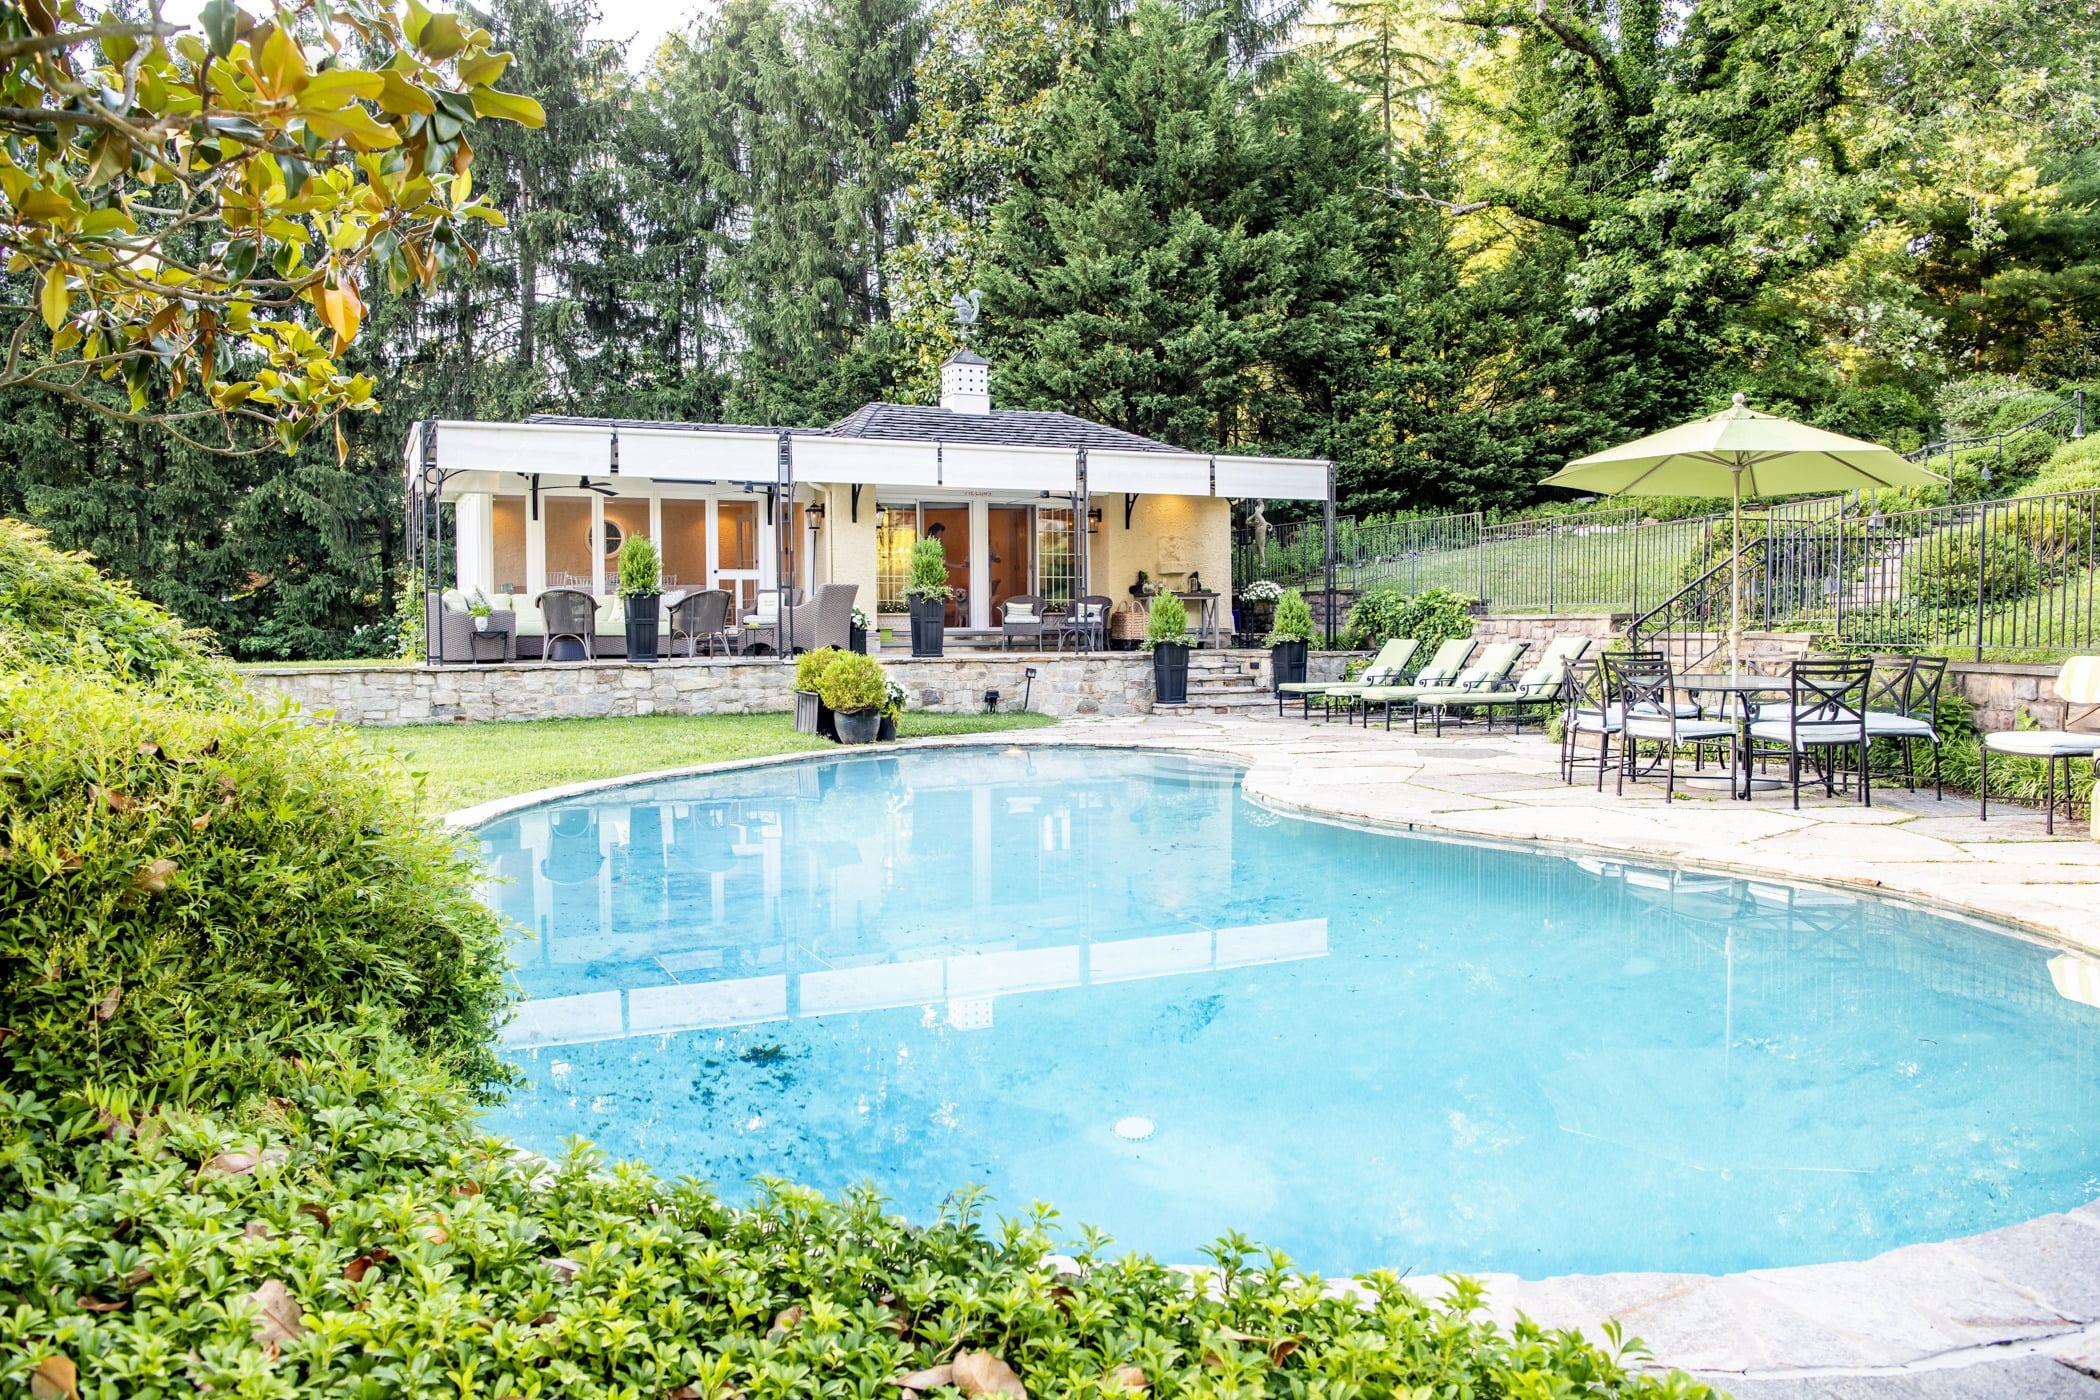 Luxury pool house custom designed for a home remodel with a large seating space and large metal pergola (Full pool view)